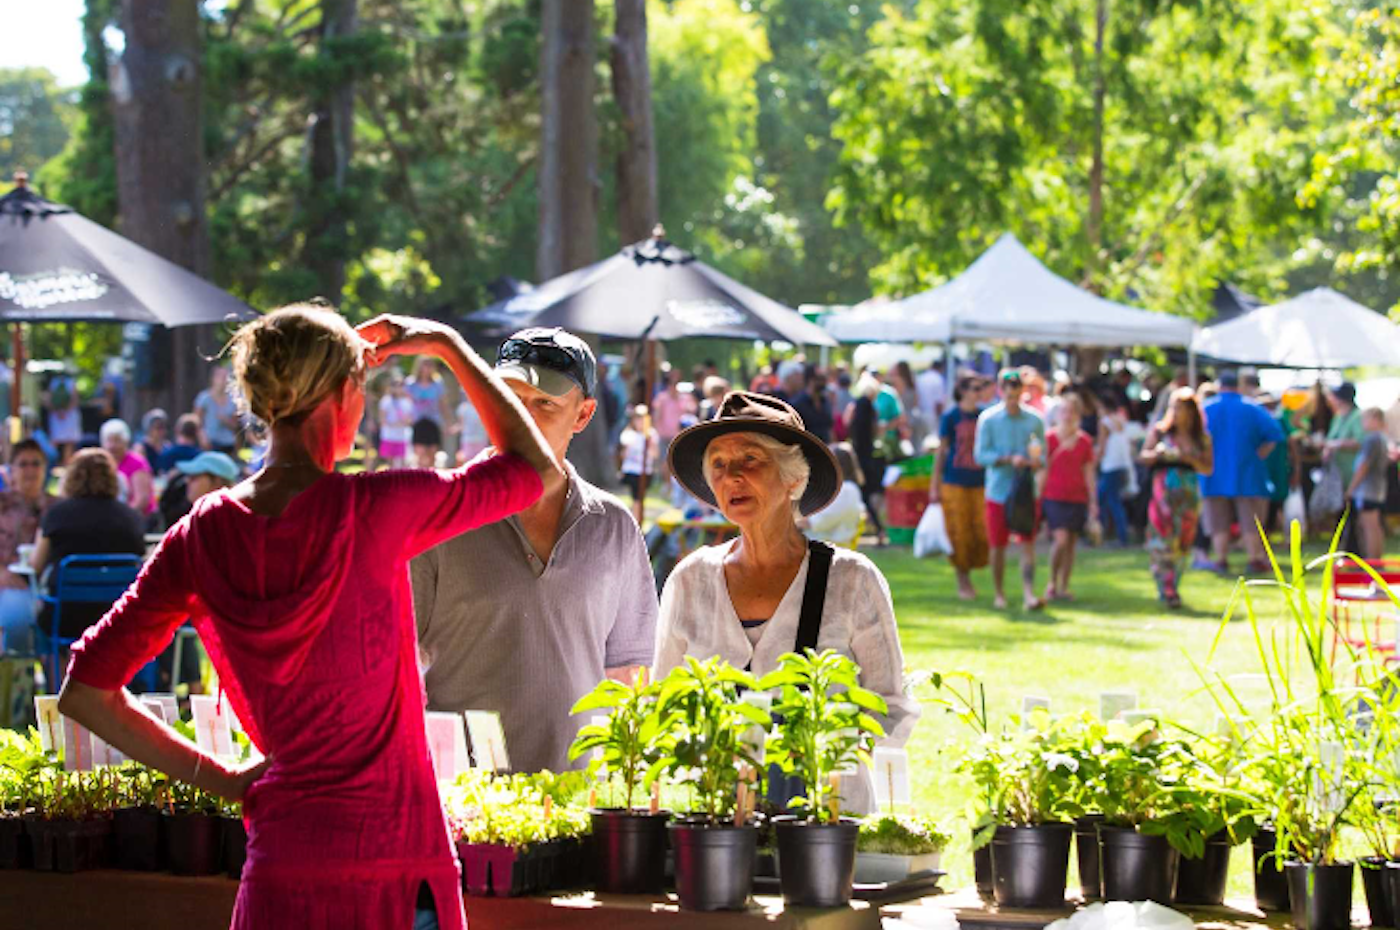 hastings-top-10-holiday-park-attraction-hawkes-bay-farmers-market